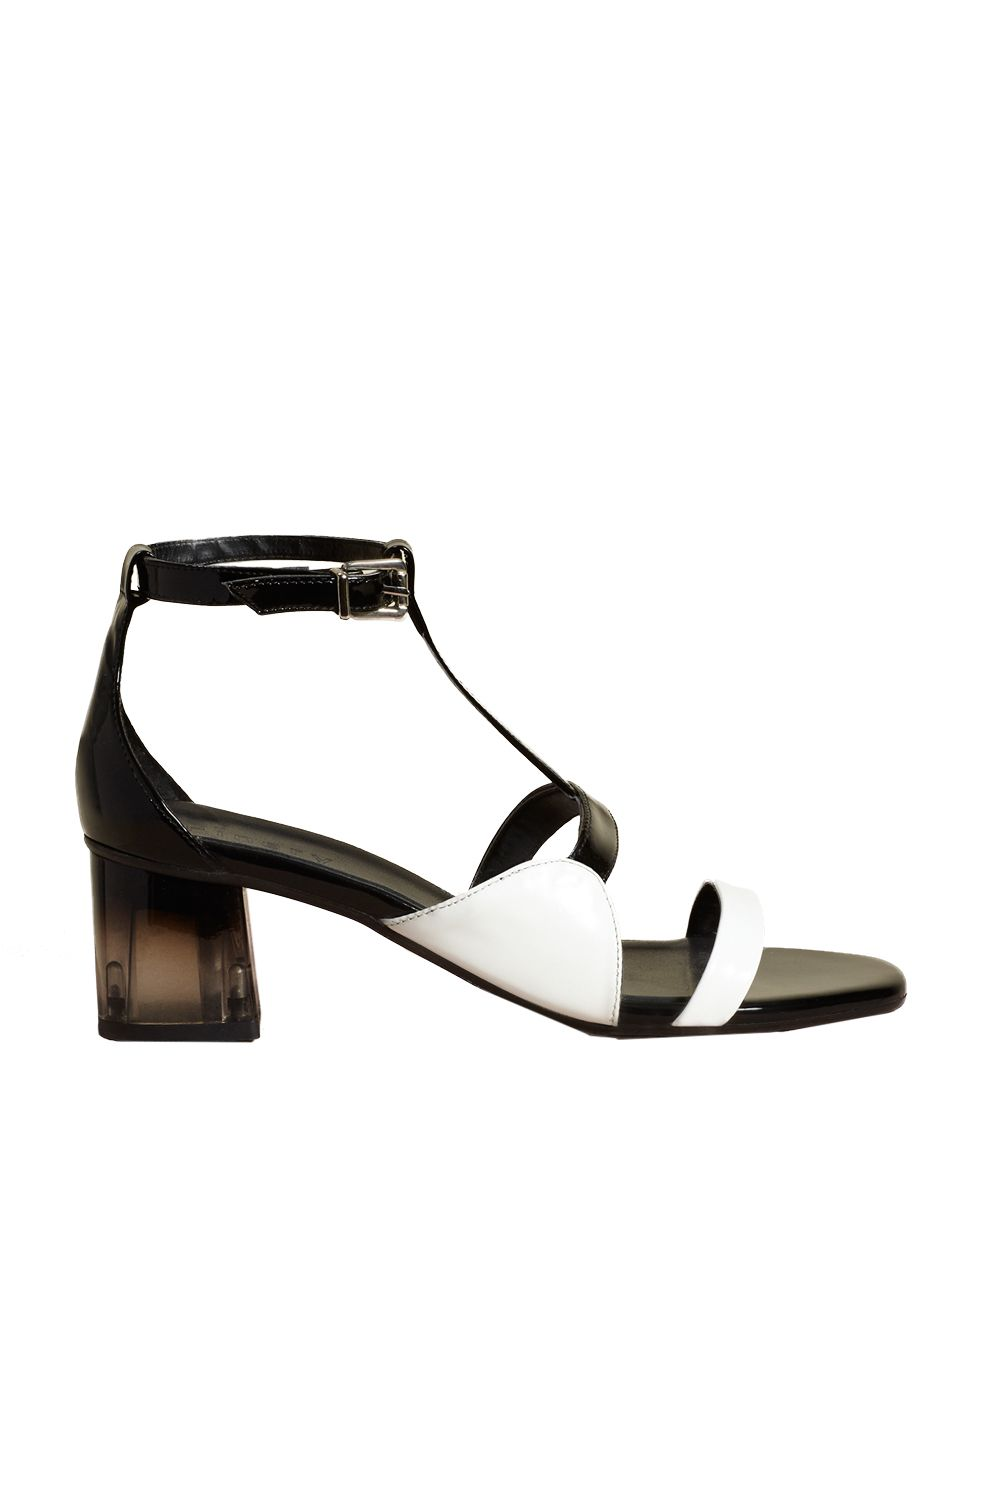 """<p>The more straps, the more security. </p><p>$79, <a href=""""https://www.finerylondon.com/us/products/clarence-leather-ankle-strap-sandals?taxon_id=133"""" target=""""_blank"""">finerylondon.com</a>.</p>"""